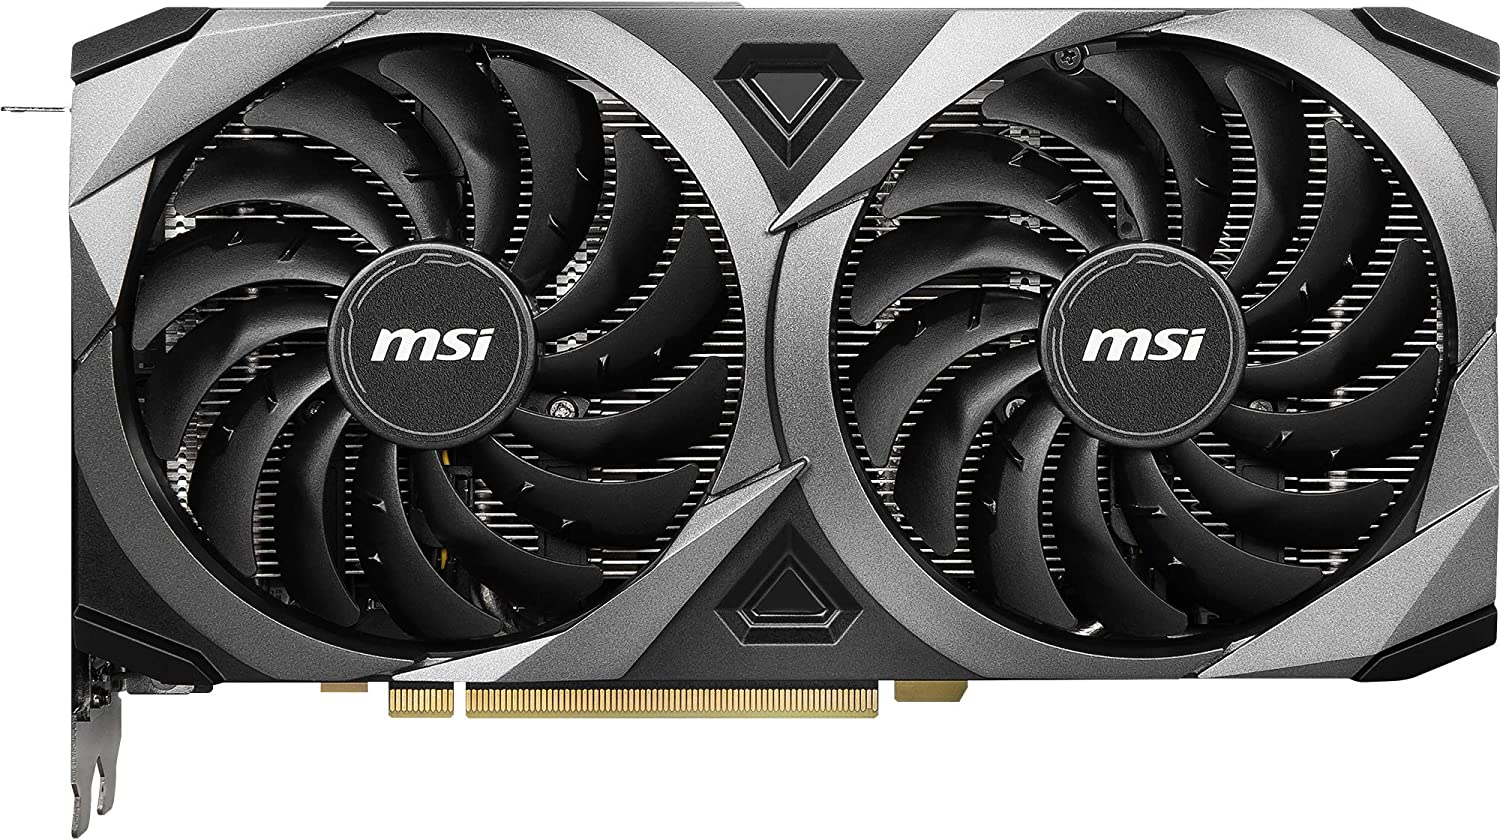 MSI Gaming GeForce RTX 3070 8 GB GDRR6 256 bit HDMI/DP TORX Fan 3.0 Ampere Architettura OC Scheda grafica (RTX 3070 VENTUS 2X OC)